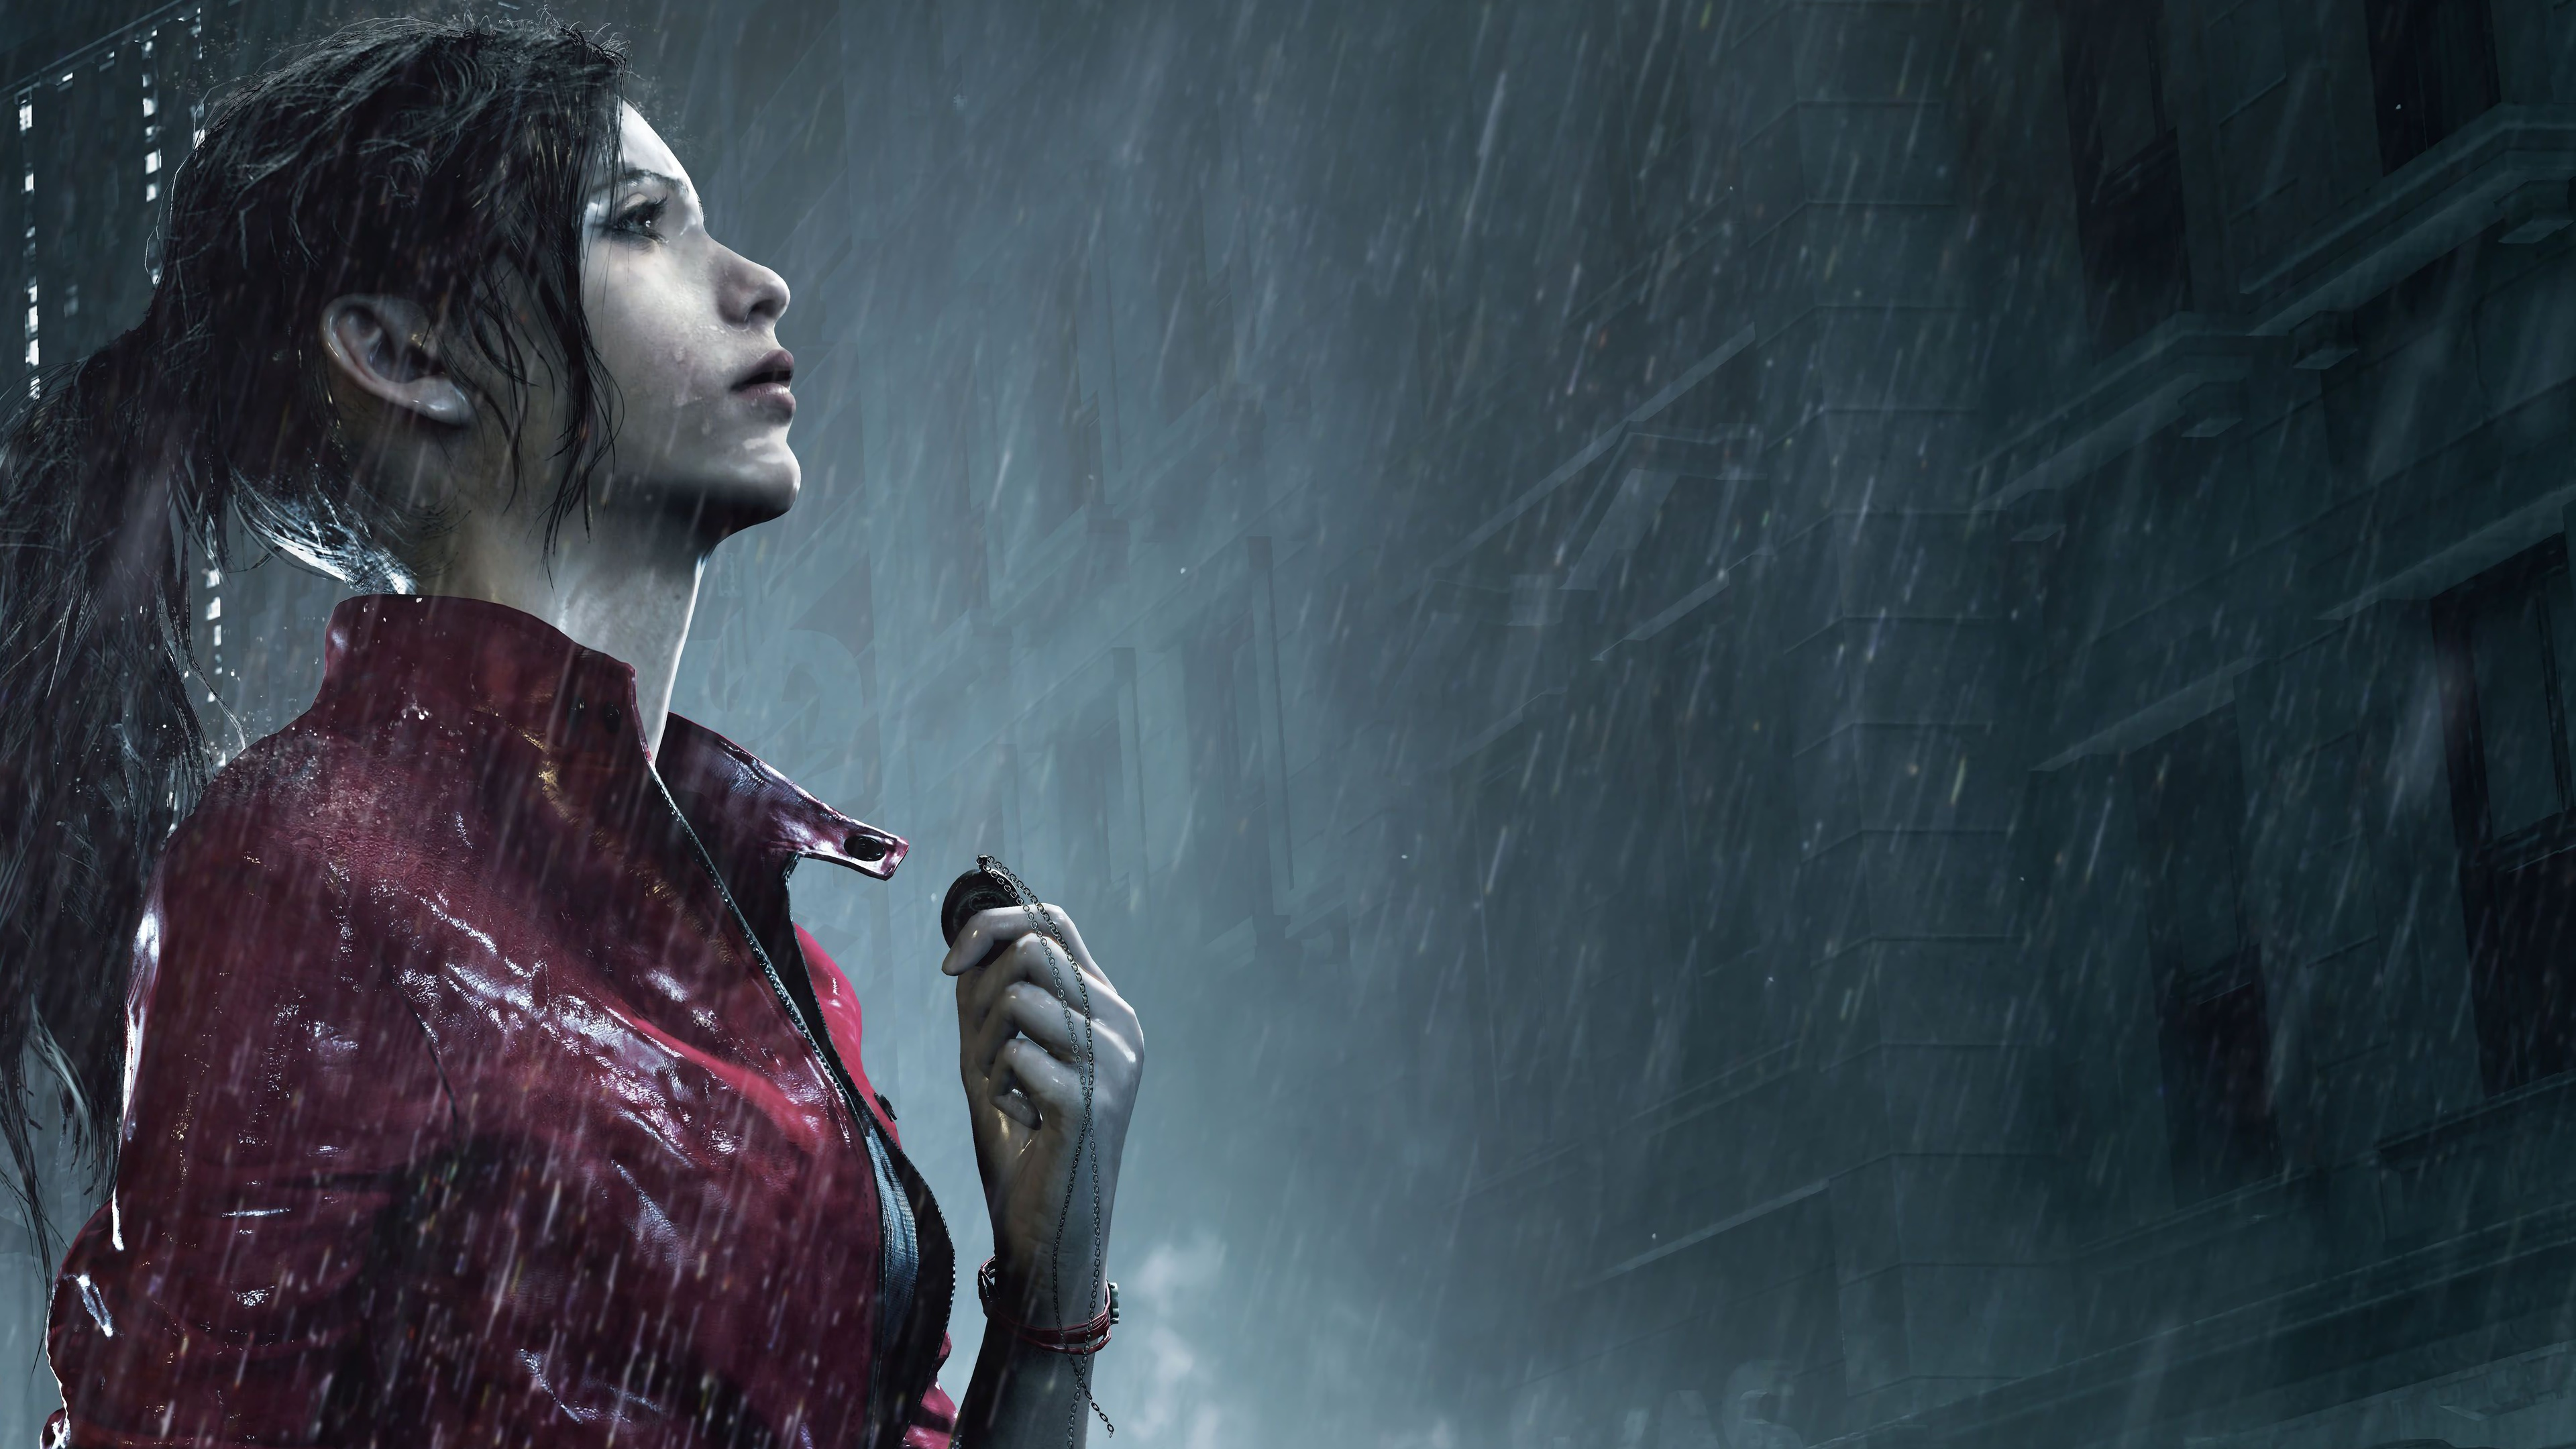 claire redfield resident evil 2 8k 1537692078 - Claire Redfield Resident Evil 2 8k - resident evil 2 wallpapers, hd-wallpapers, games wallpapers, claire redfield wallpapers, 8k wallpapers, 5k wallpapers, 4k-wallpapers